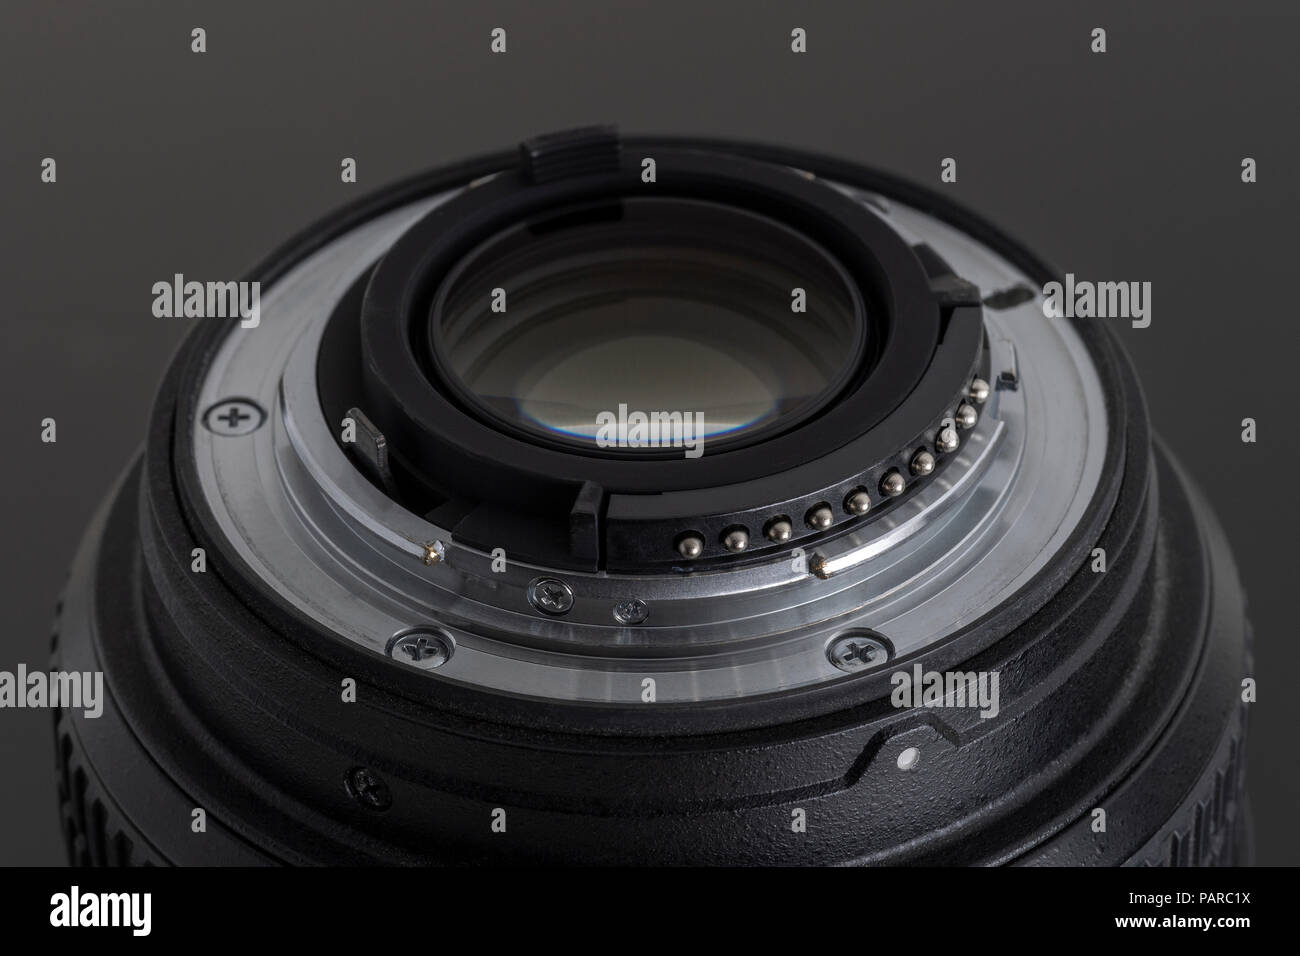 Close up detail rear element view of photo DSLR camera or video lens on black background - Stock Image